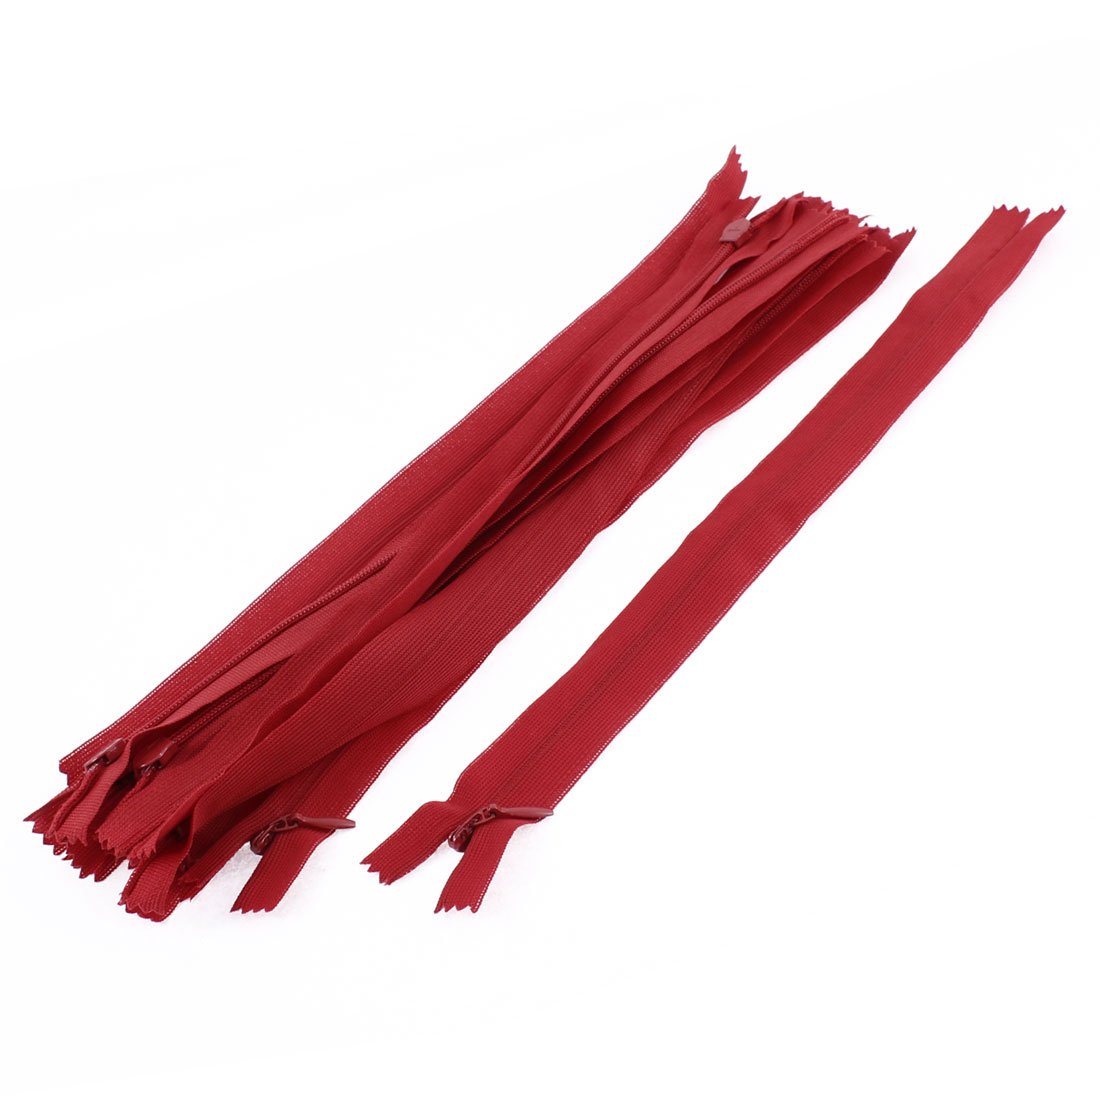 Clothes Invisible Nylon Coil Zippers Tailor Sewing Craft Tool Red 25cm 10 Pcs